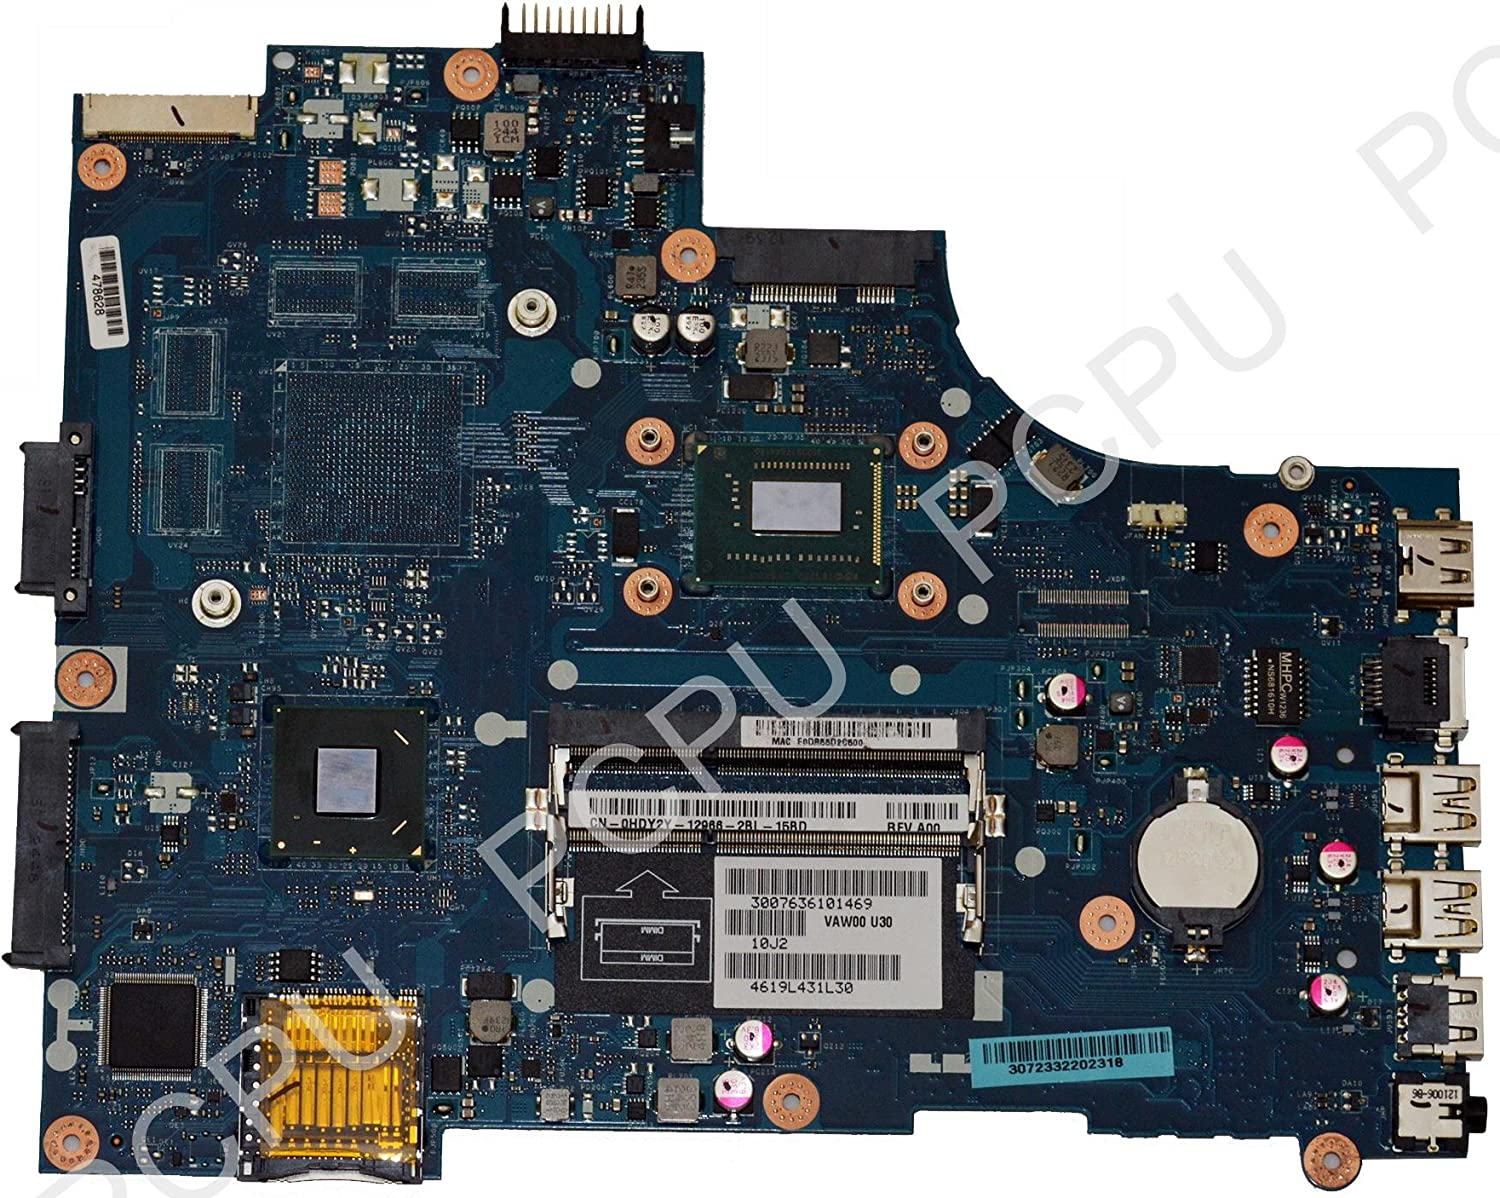 HDY2Y Dell Inspiron 15 3521 Laptop Motherboard w/Intel i3-3217u 1.8Ghz CPU, VAW00, LA-9104P